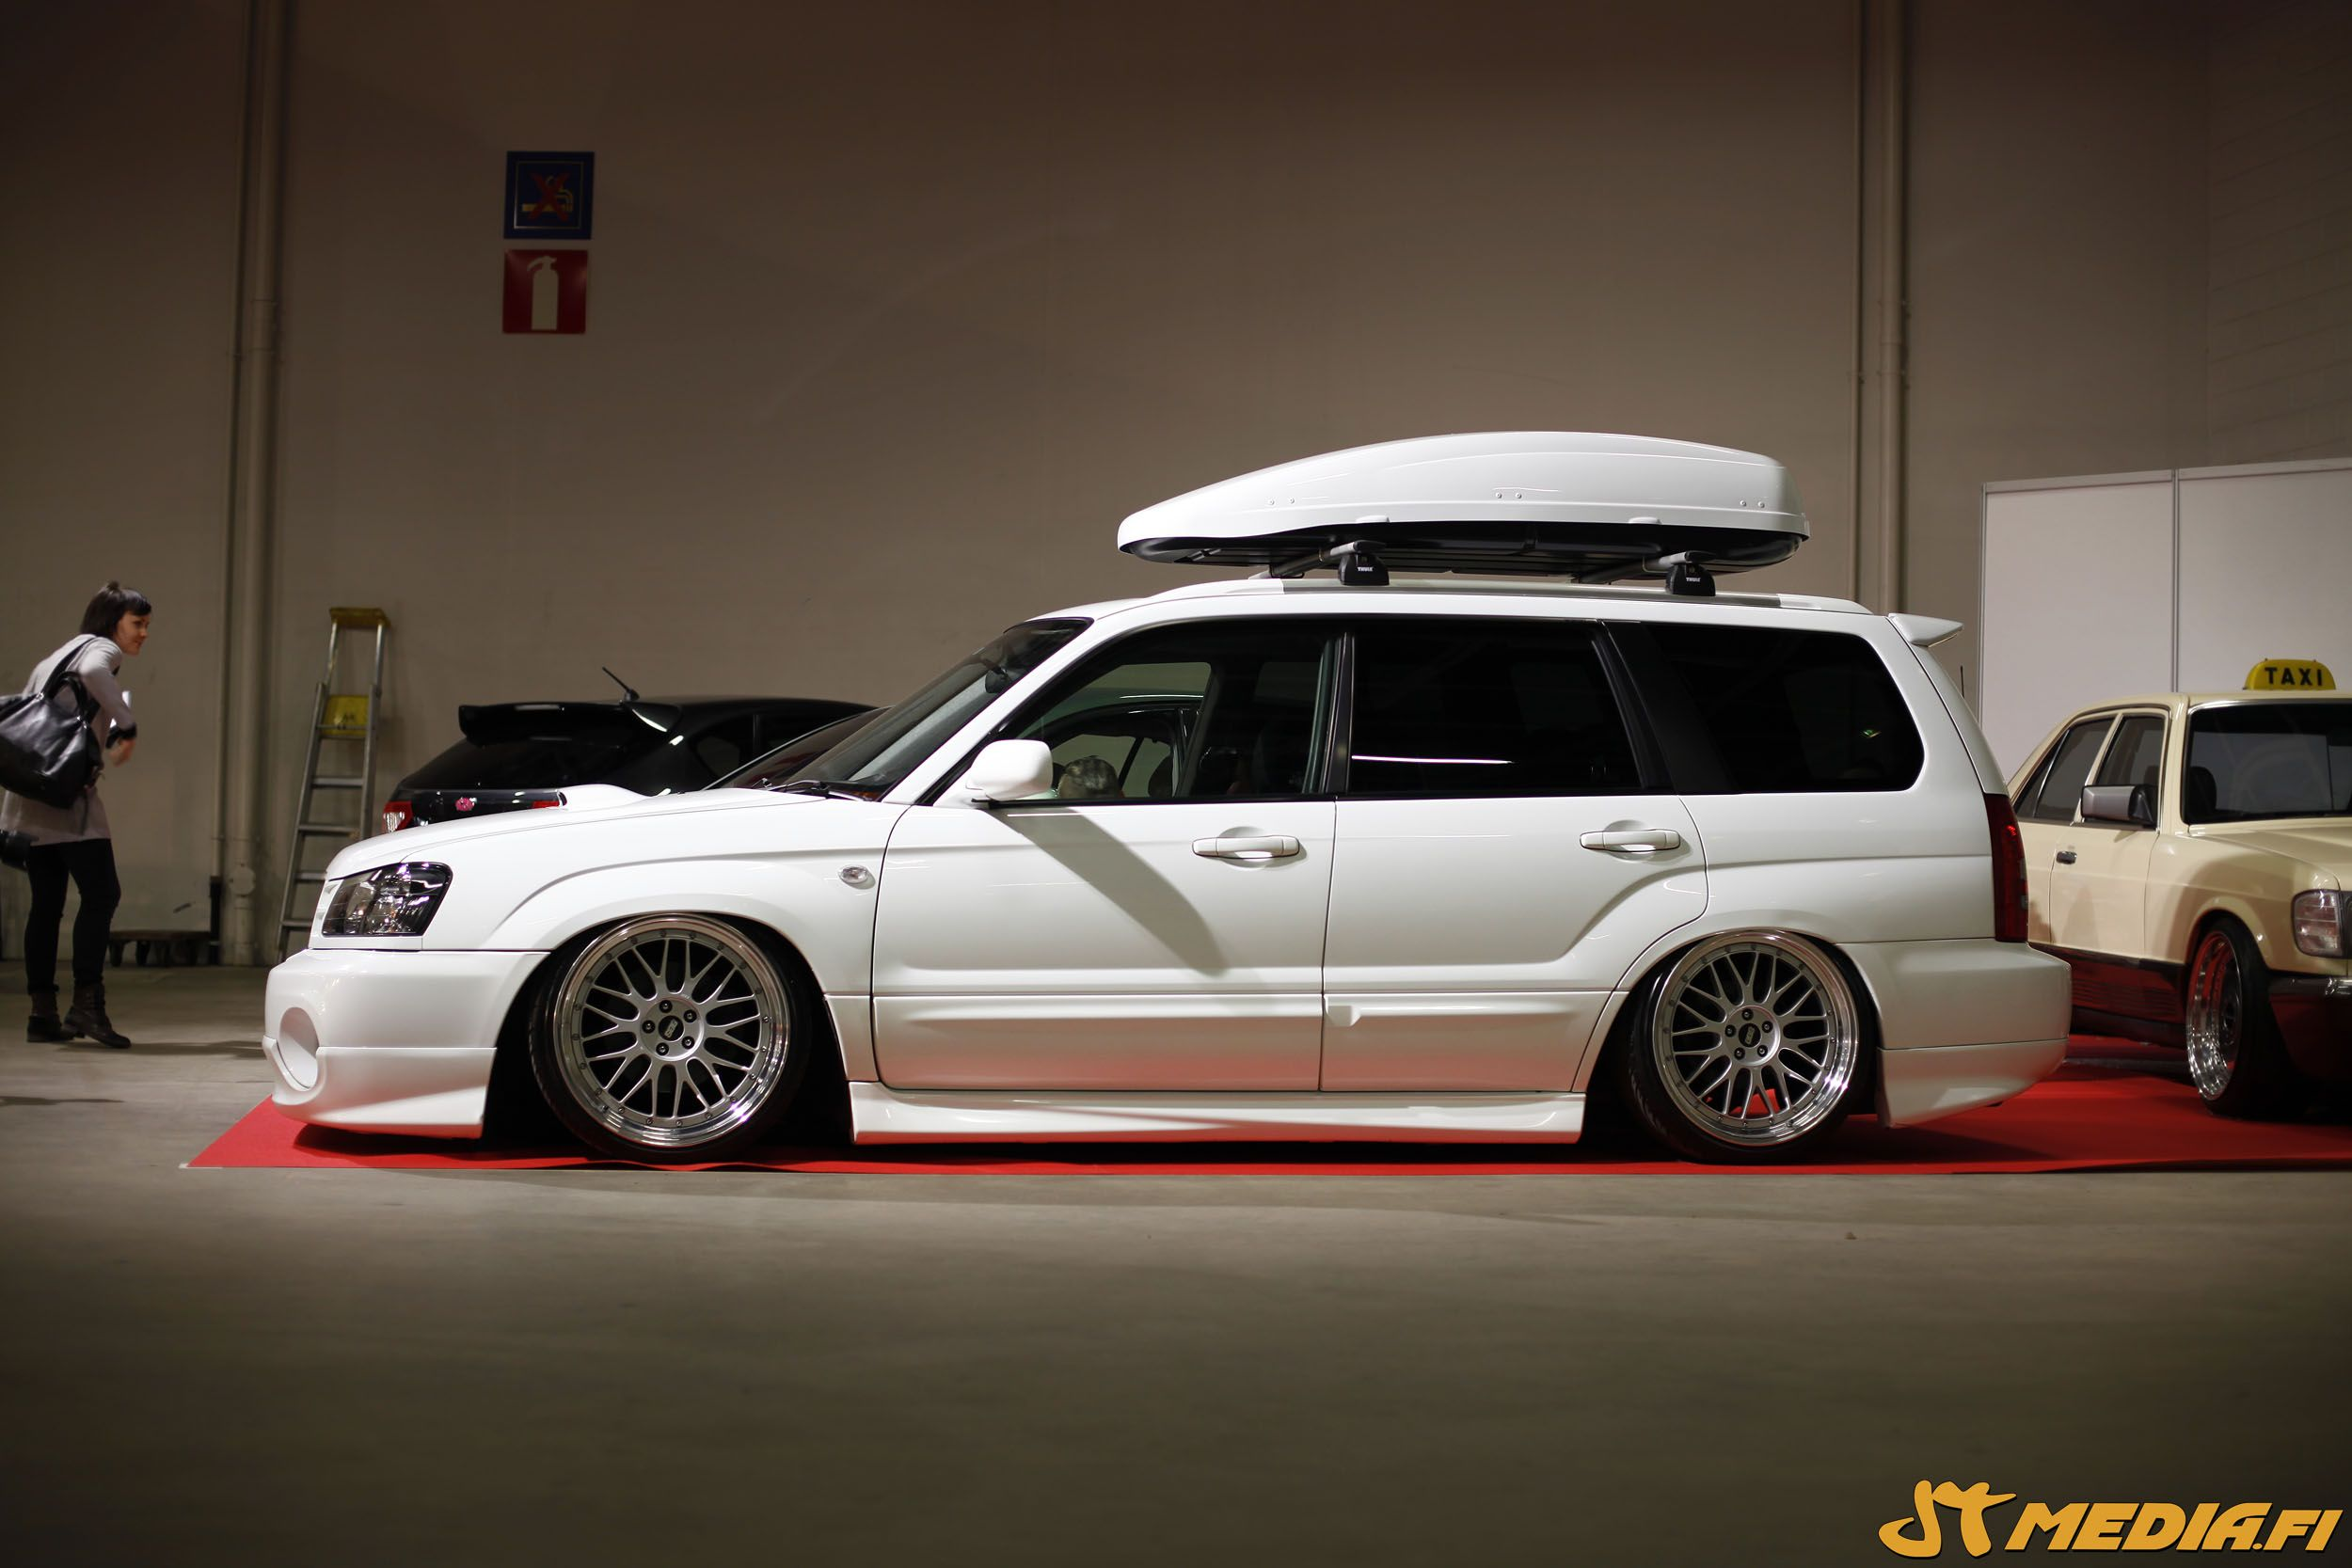 Slammed Forester Wagon Dropped Subaru Cars、subaru